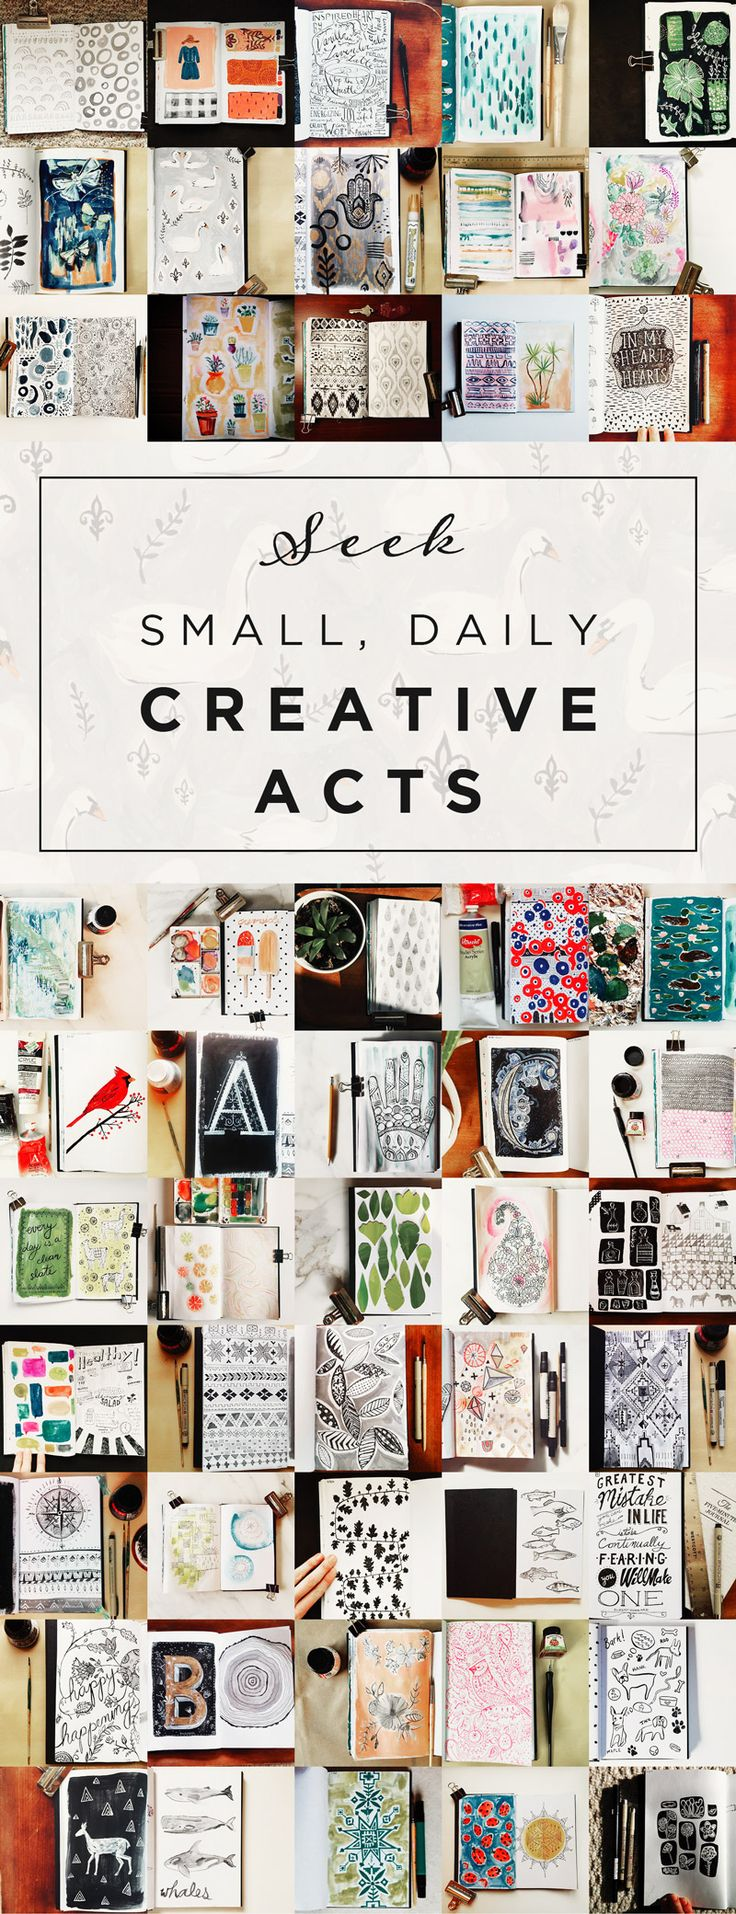 The Halfway Point of 2015 — TWO IF BY SEA STUDIOS. Creative inspiration. Art journal inspiration